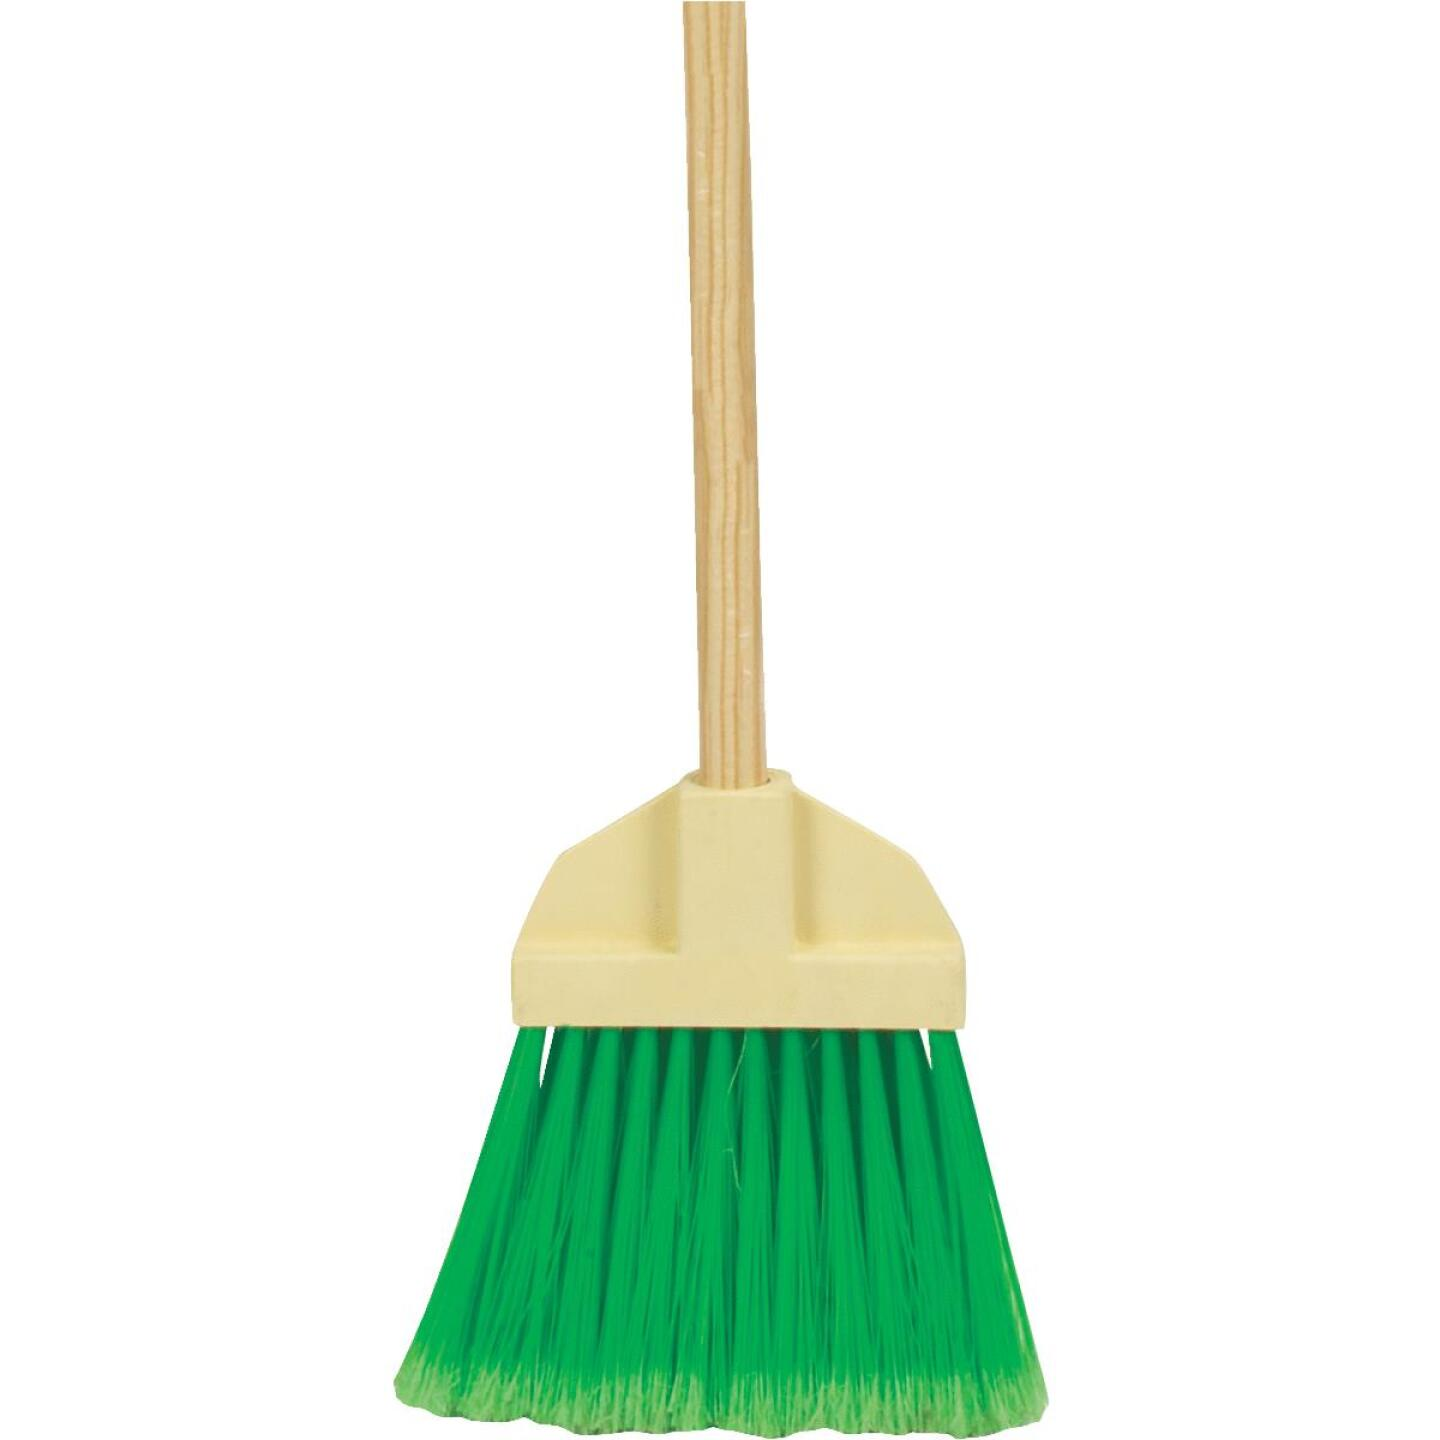 Bruske 9 In. W. x 37 In. L. Wood Handle Flared Lobby Household Broom, Green Bristles Image 1